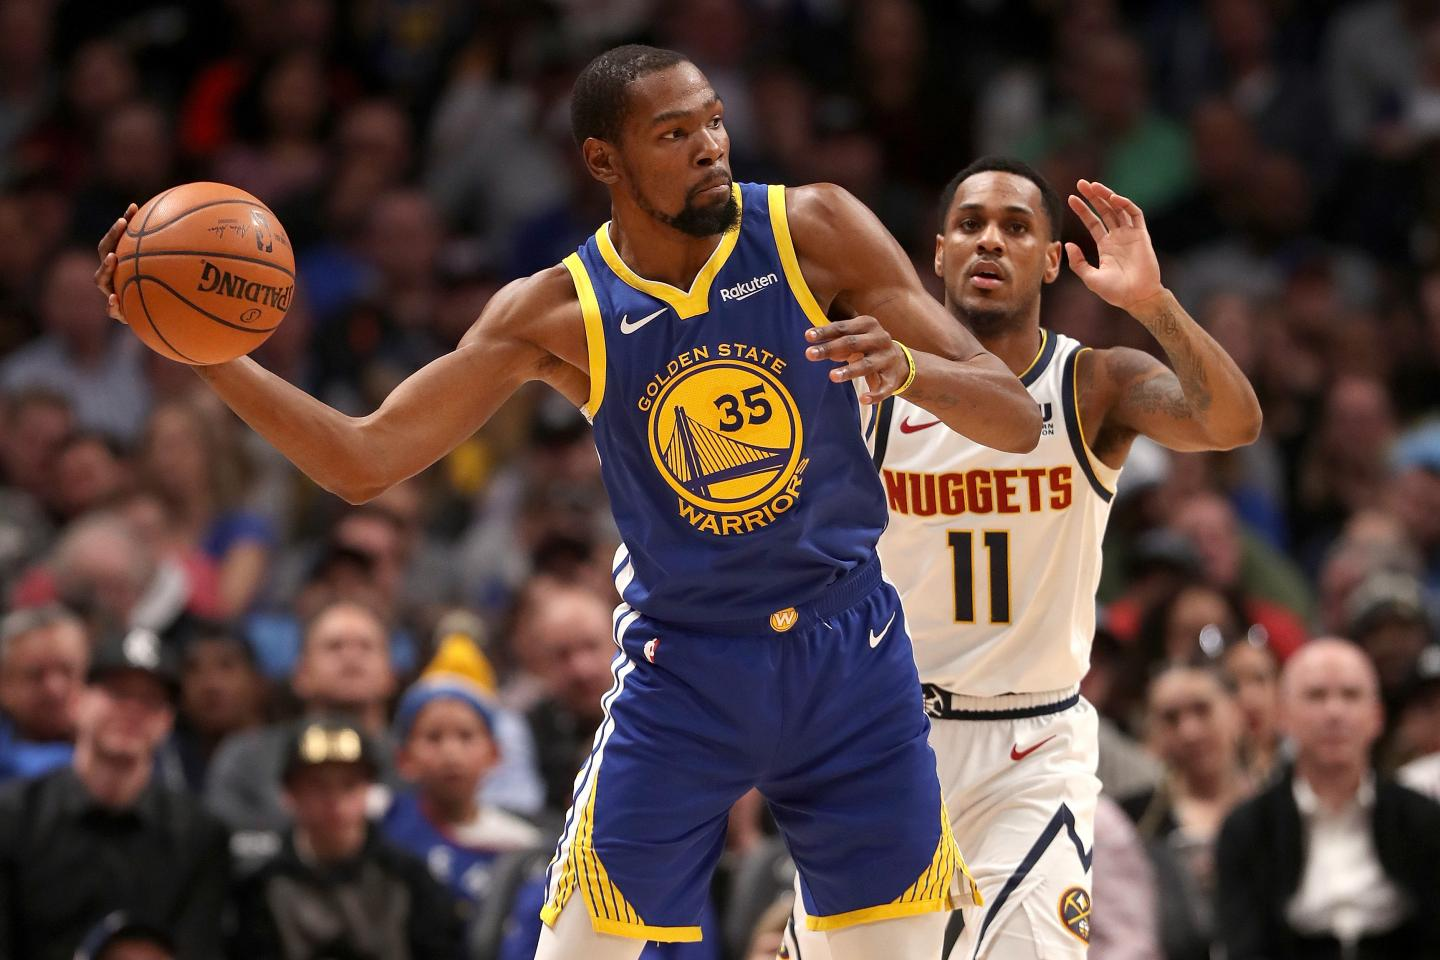 Go 'Over' With Nuggets-Warriors While Kings Should Cover Against Rockets